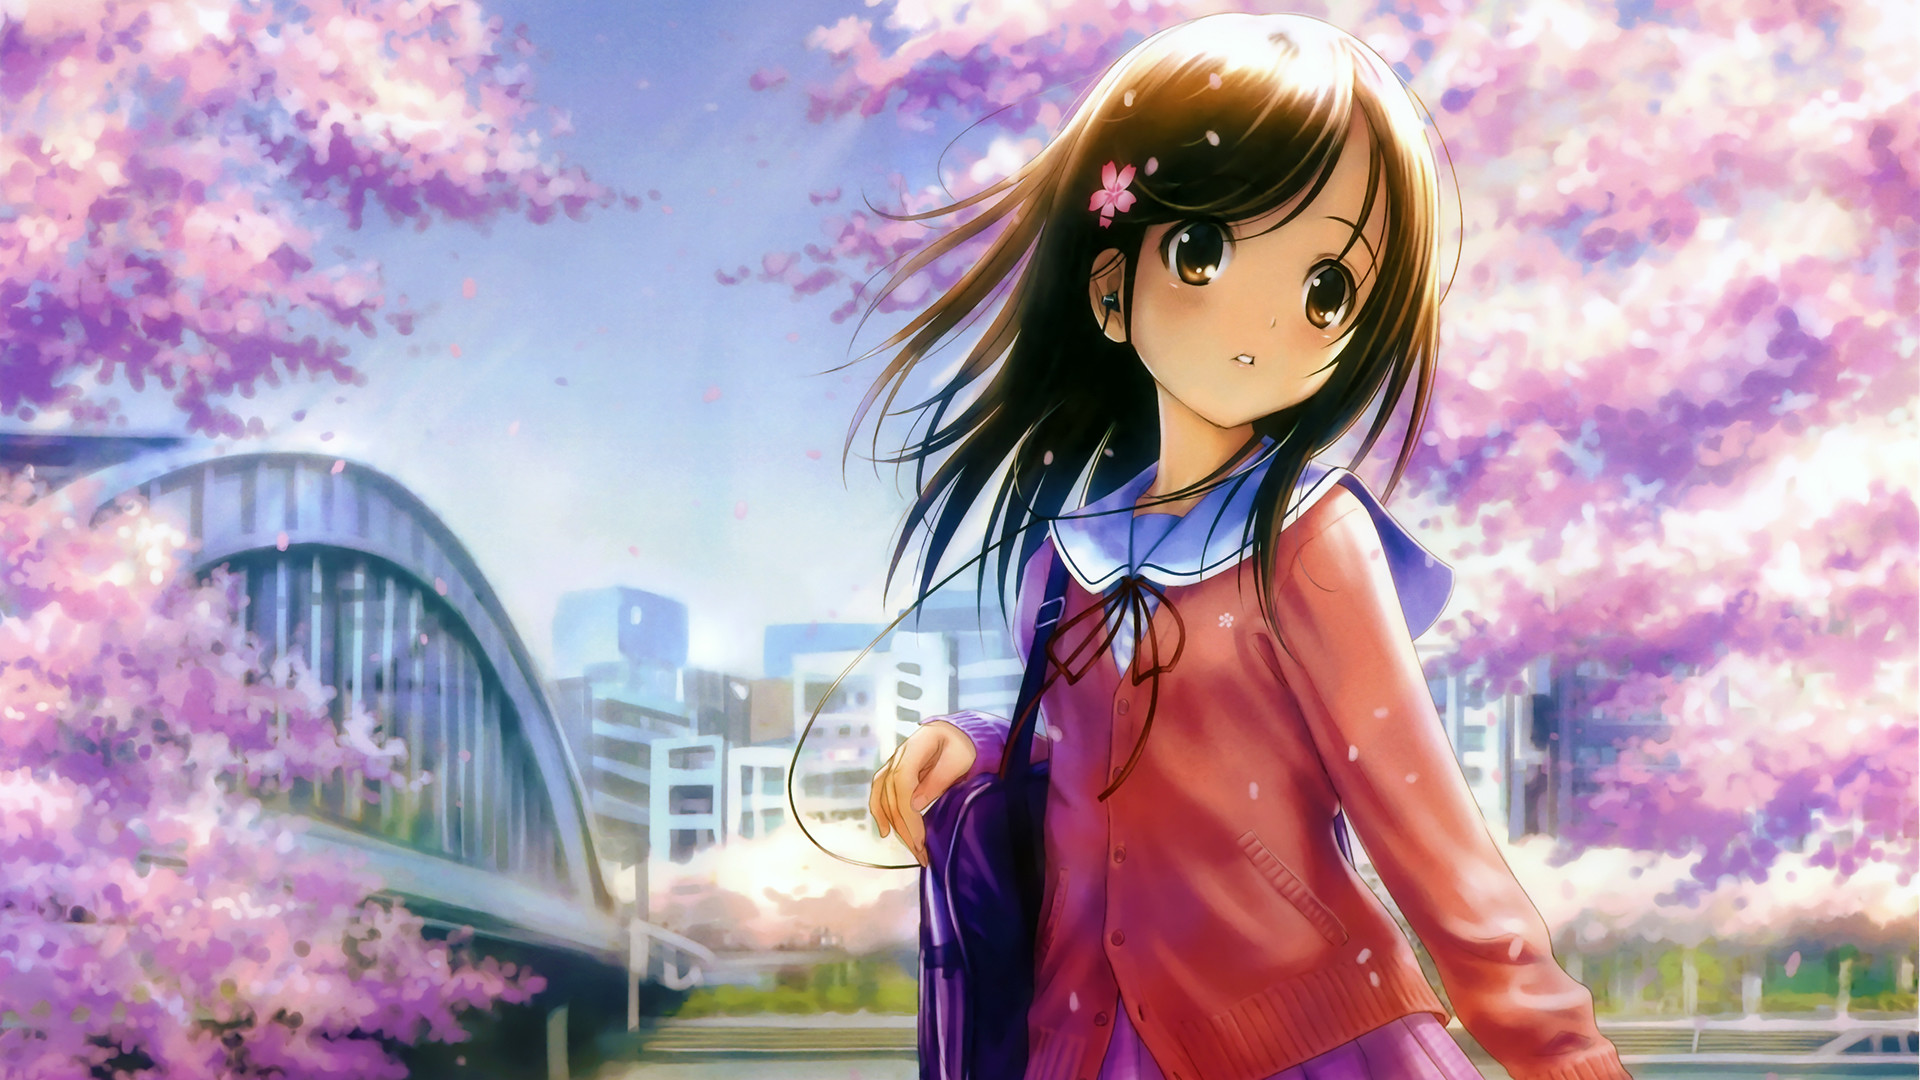 Cute Anime Wallpapers